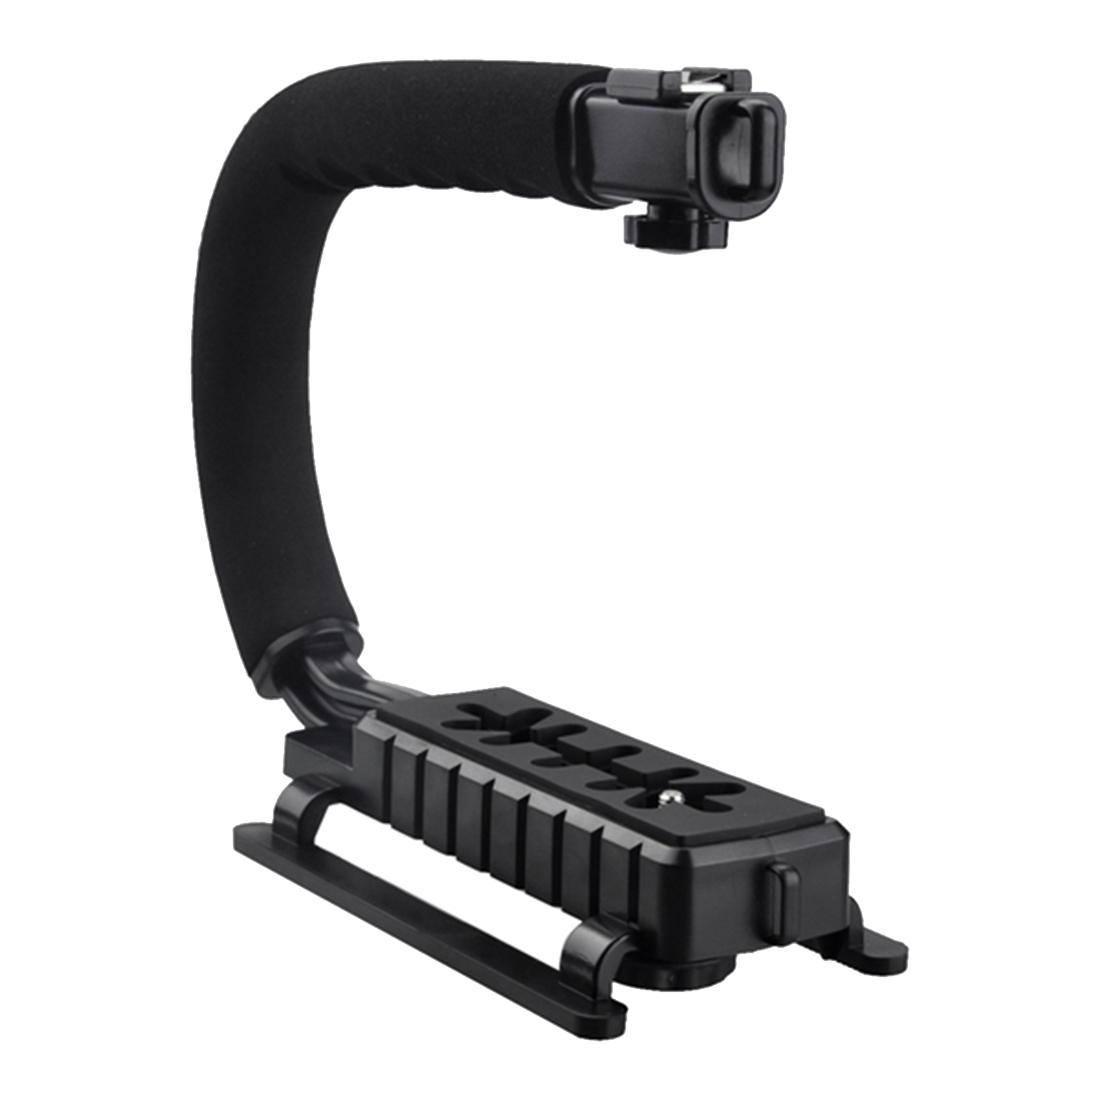 Pro Stabilizer C-Shape Bracket Video Handheld Grip Fit For Camcorder Camera Dslr - Intl By Kerno Store.